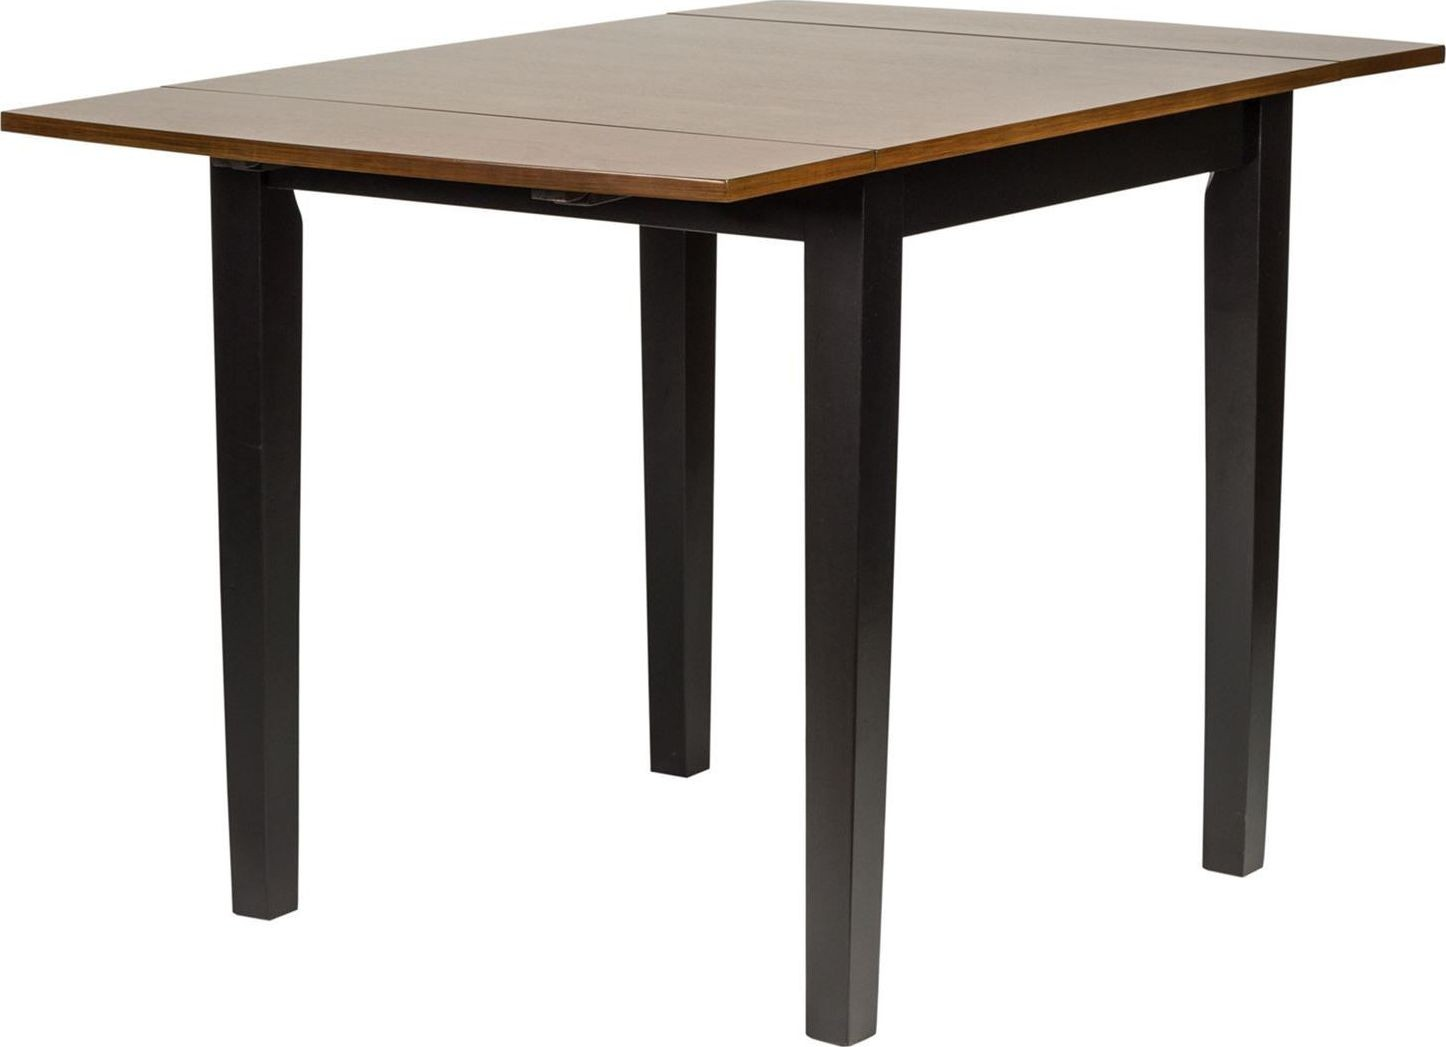 cafe black and cherry drop leaf table from liberty coleman furniture. Black Bedroom Furniture Sets. Home Design Ideas